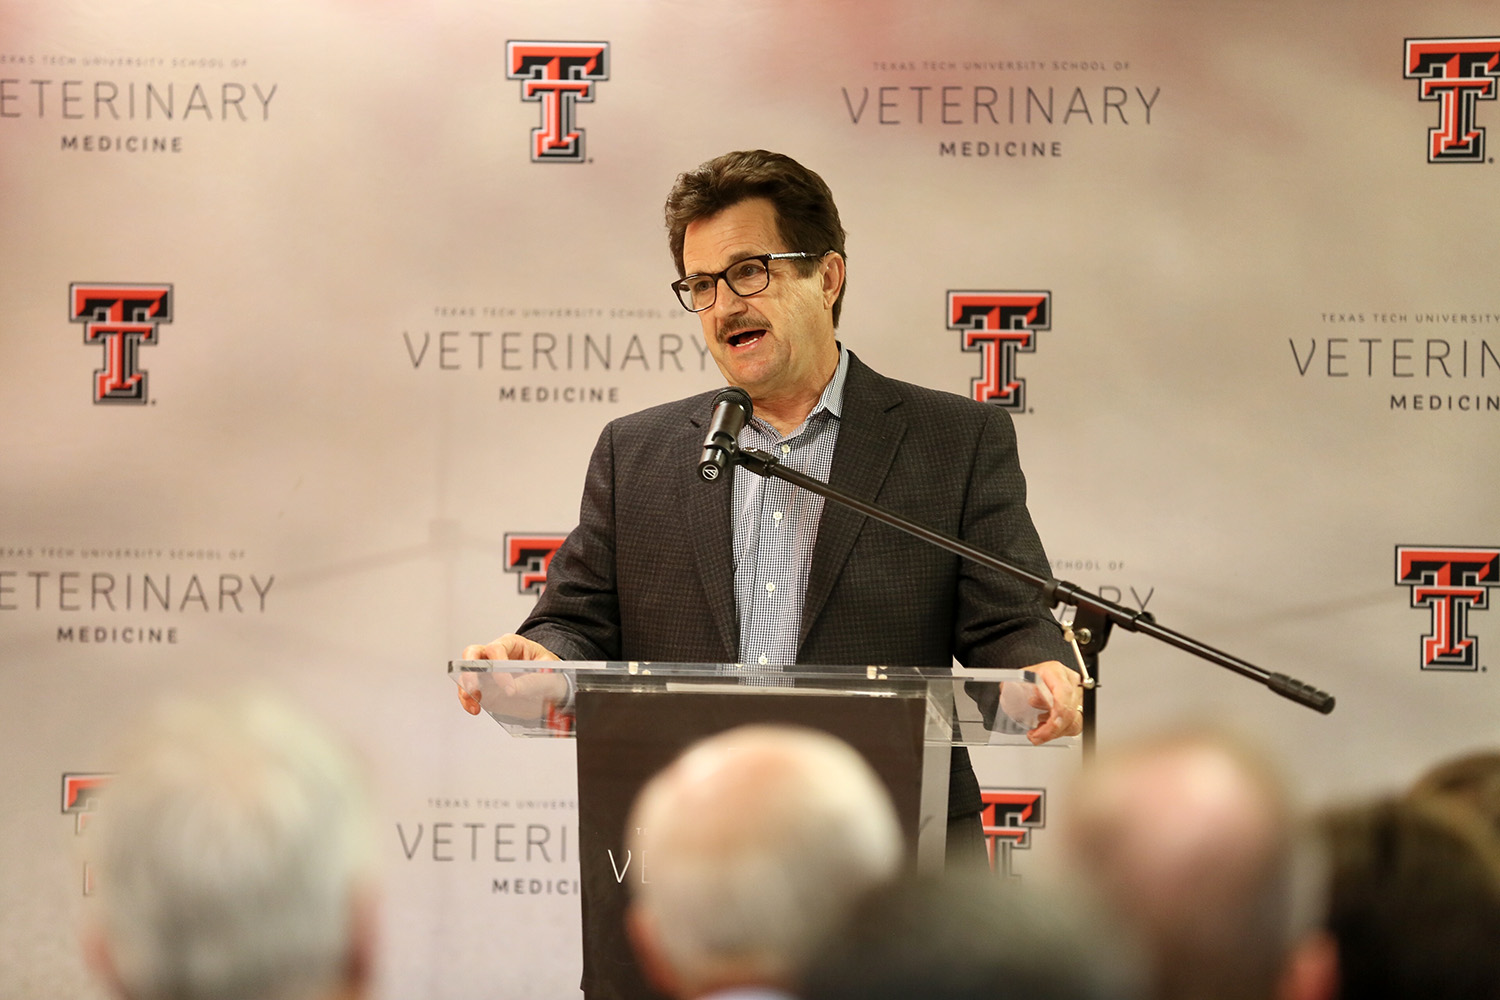 Texas Tech University President Lawrence Schovanec